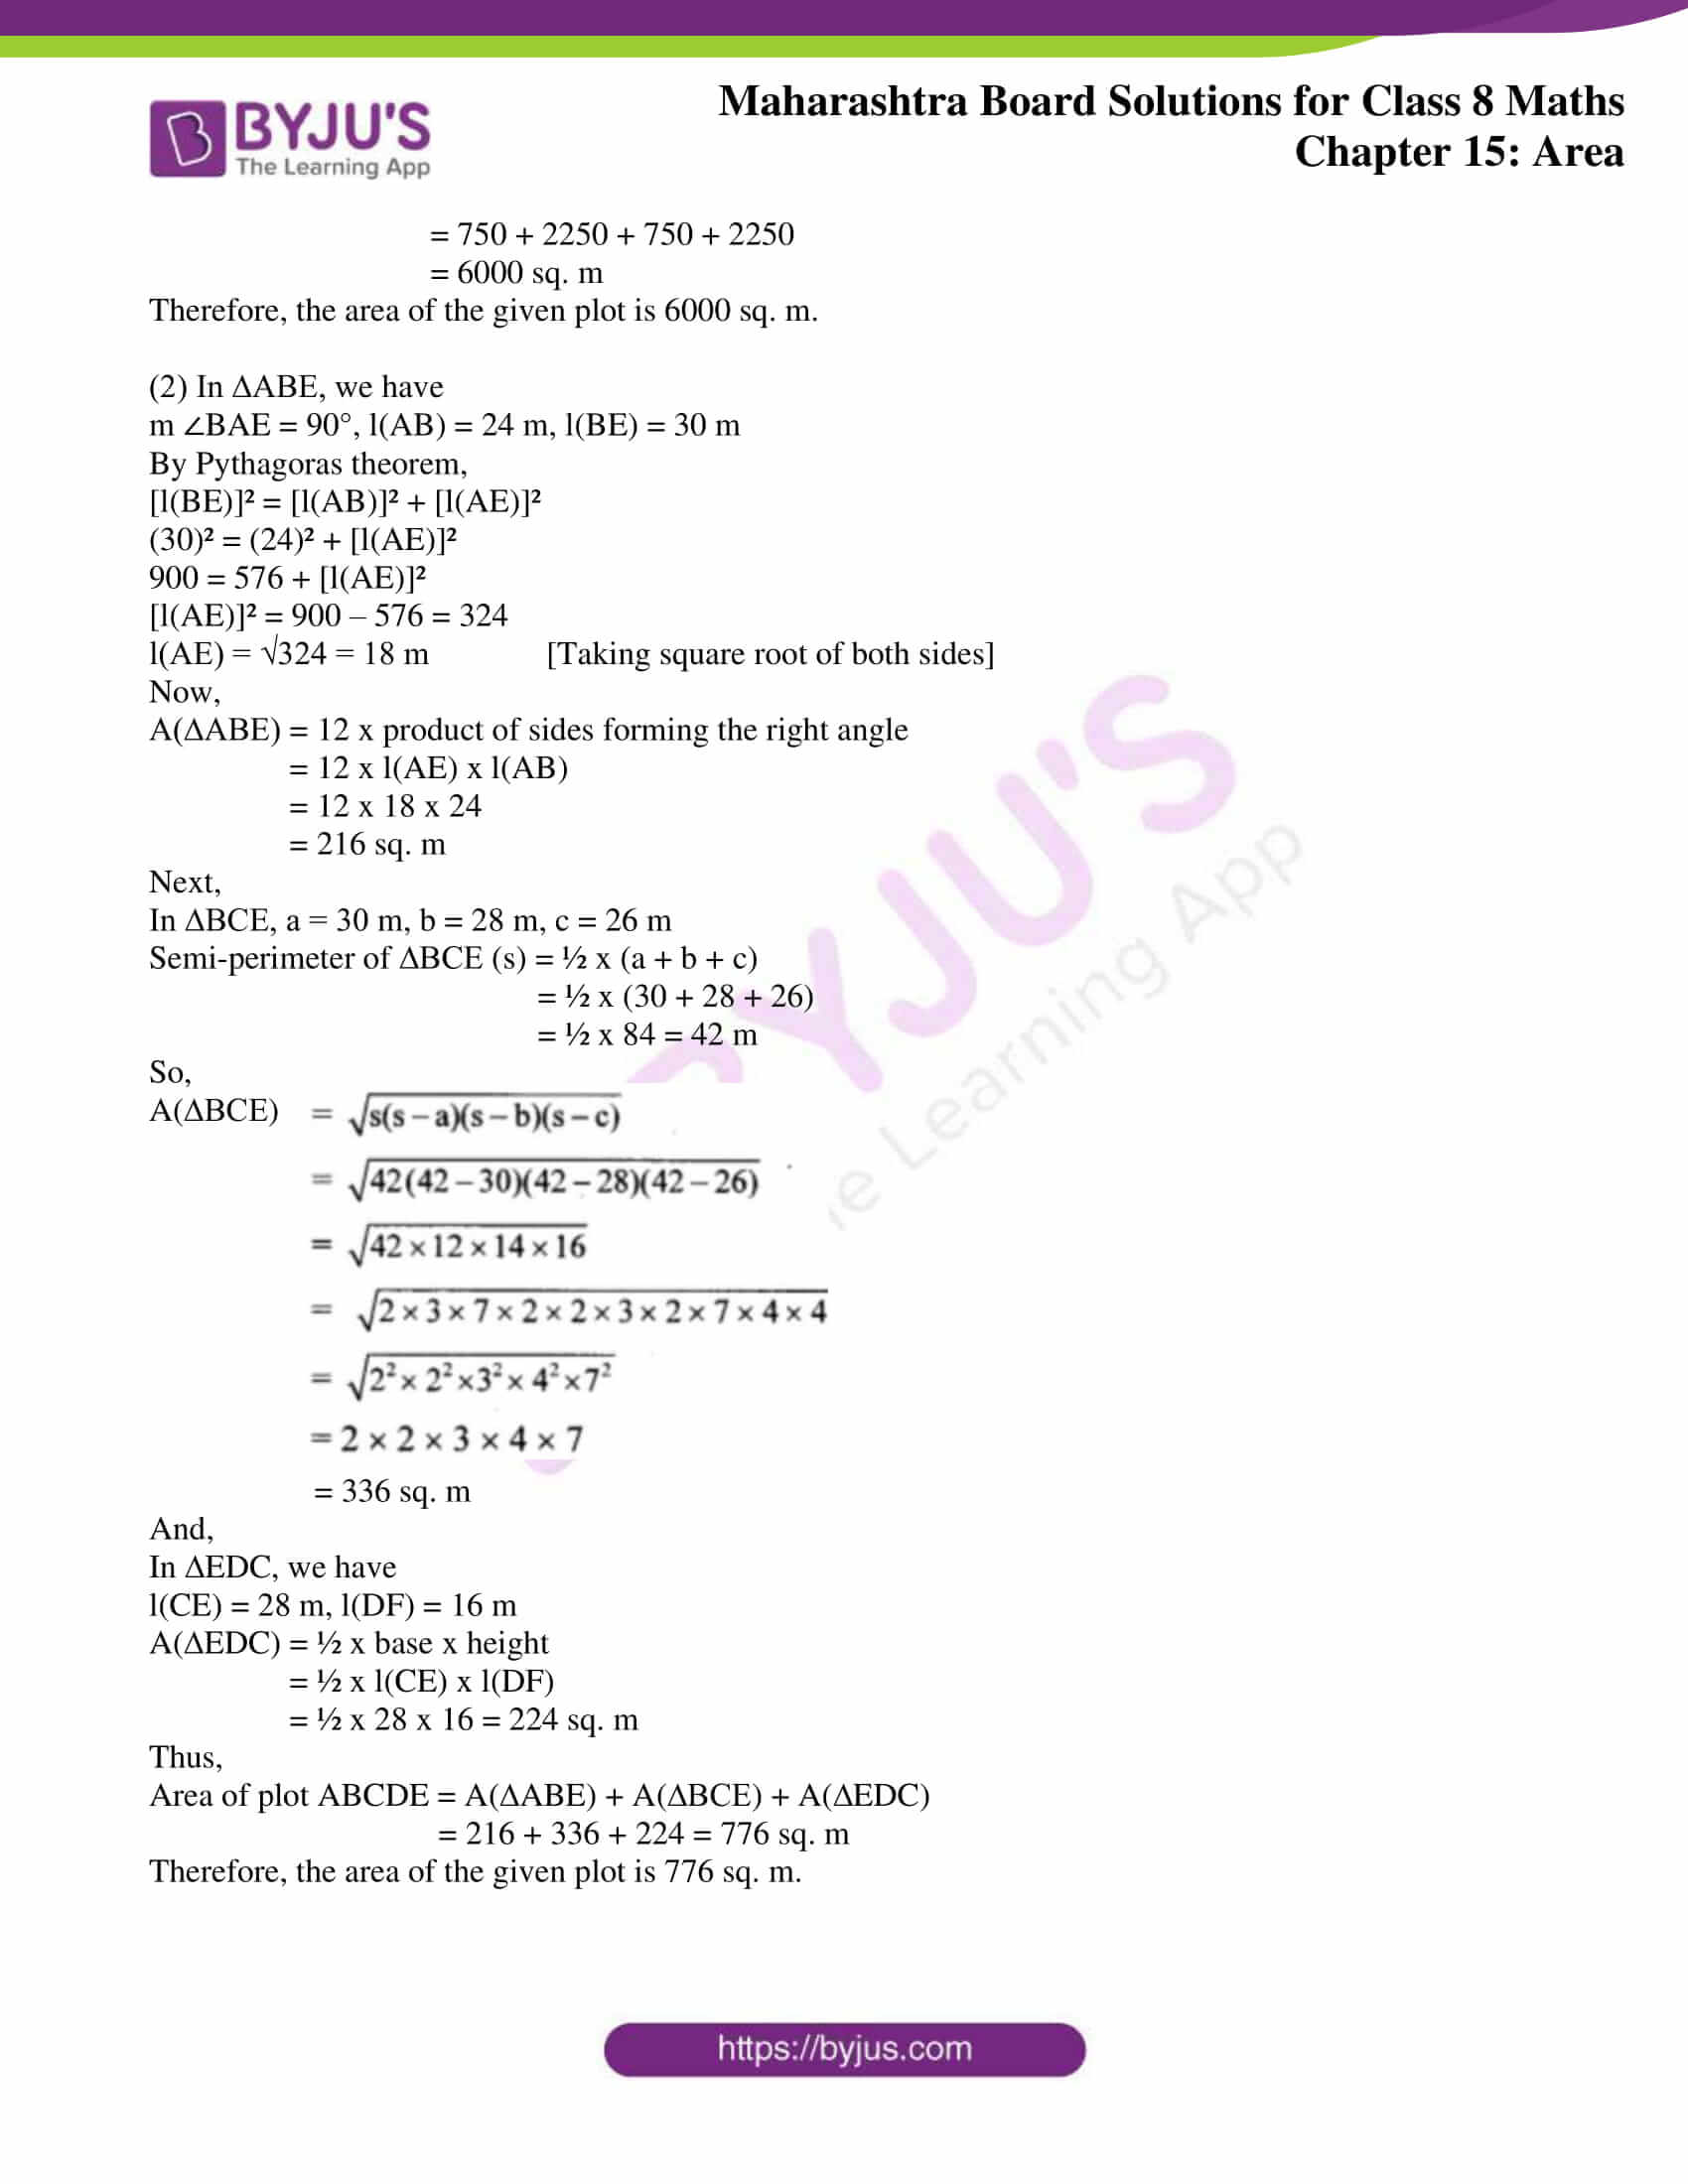 msbshse sol for class 8 maths chapter 15 10